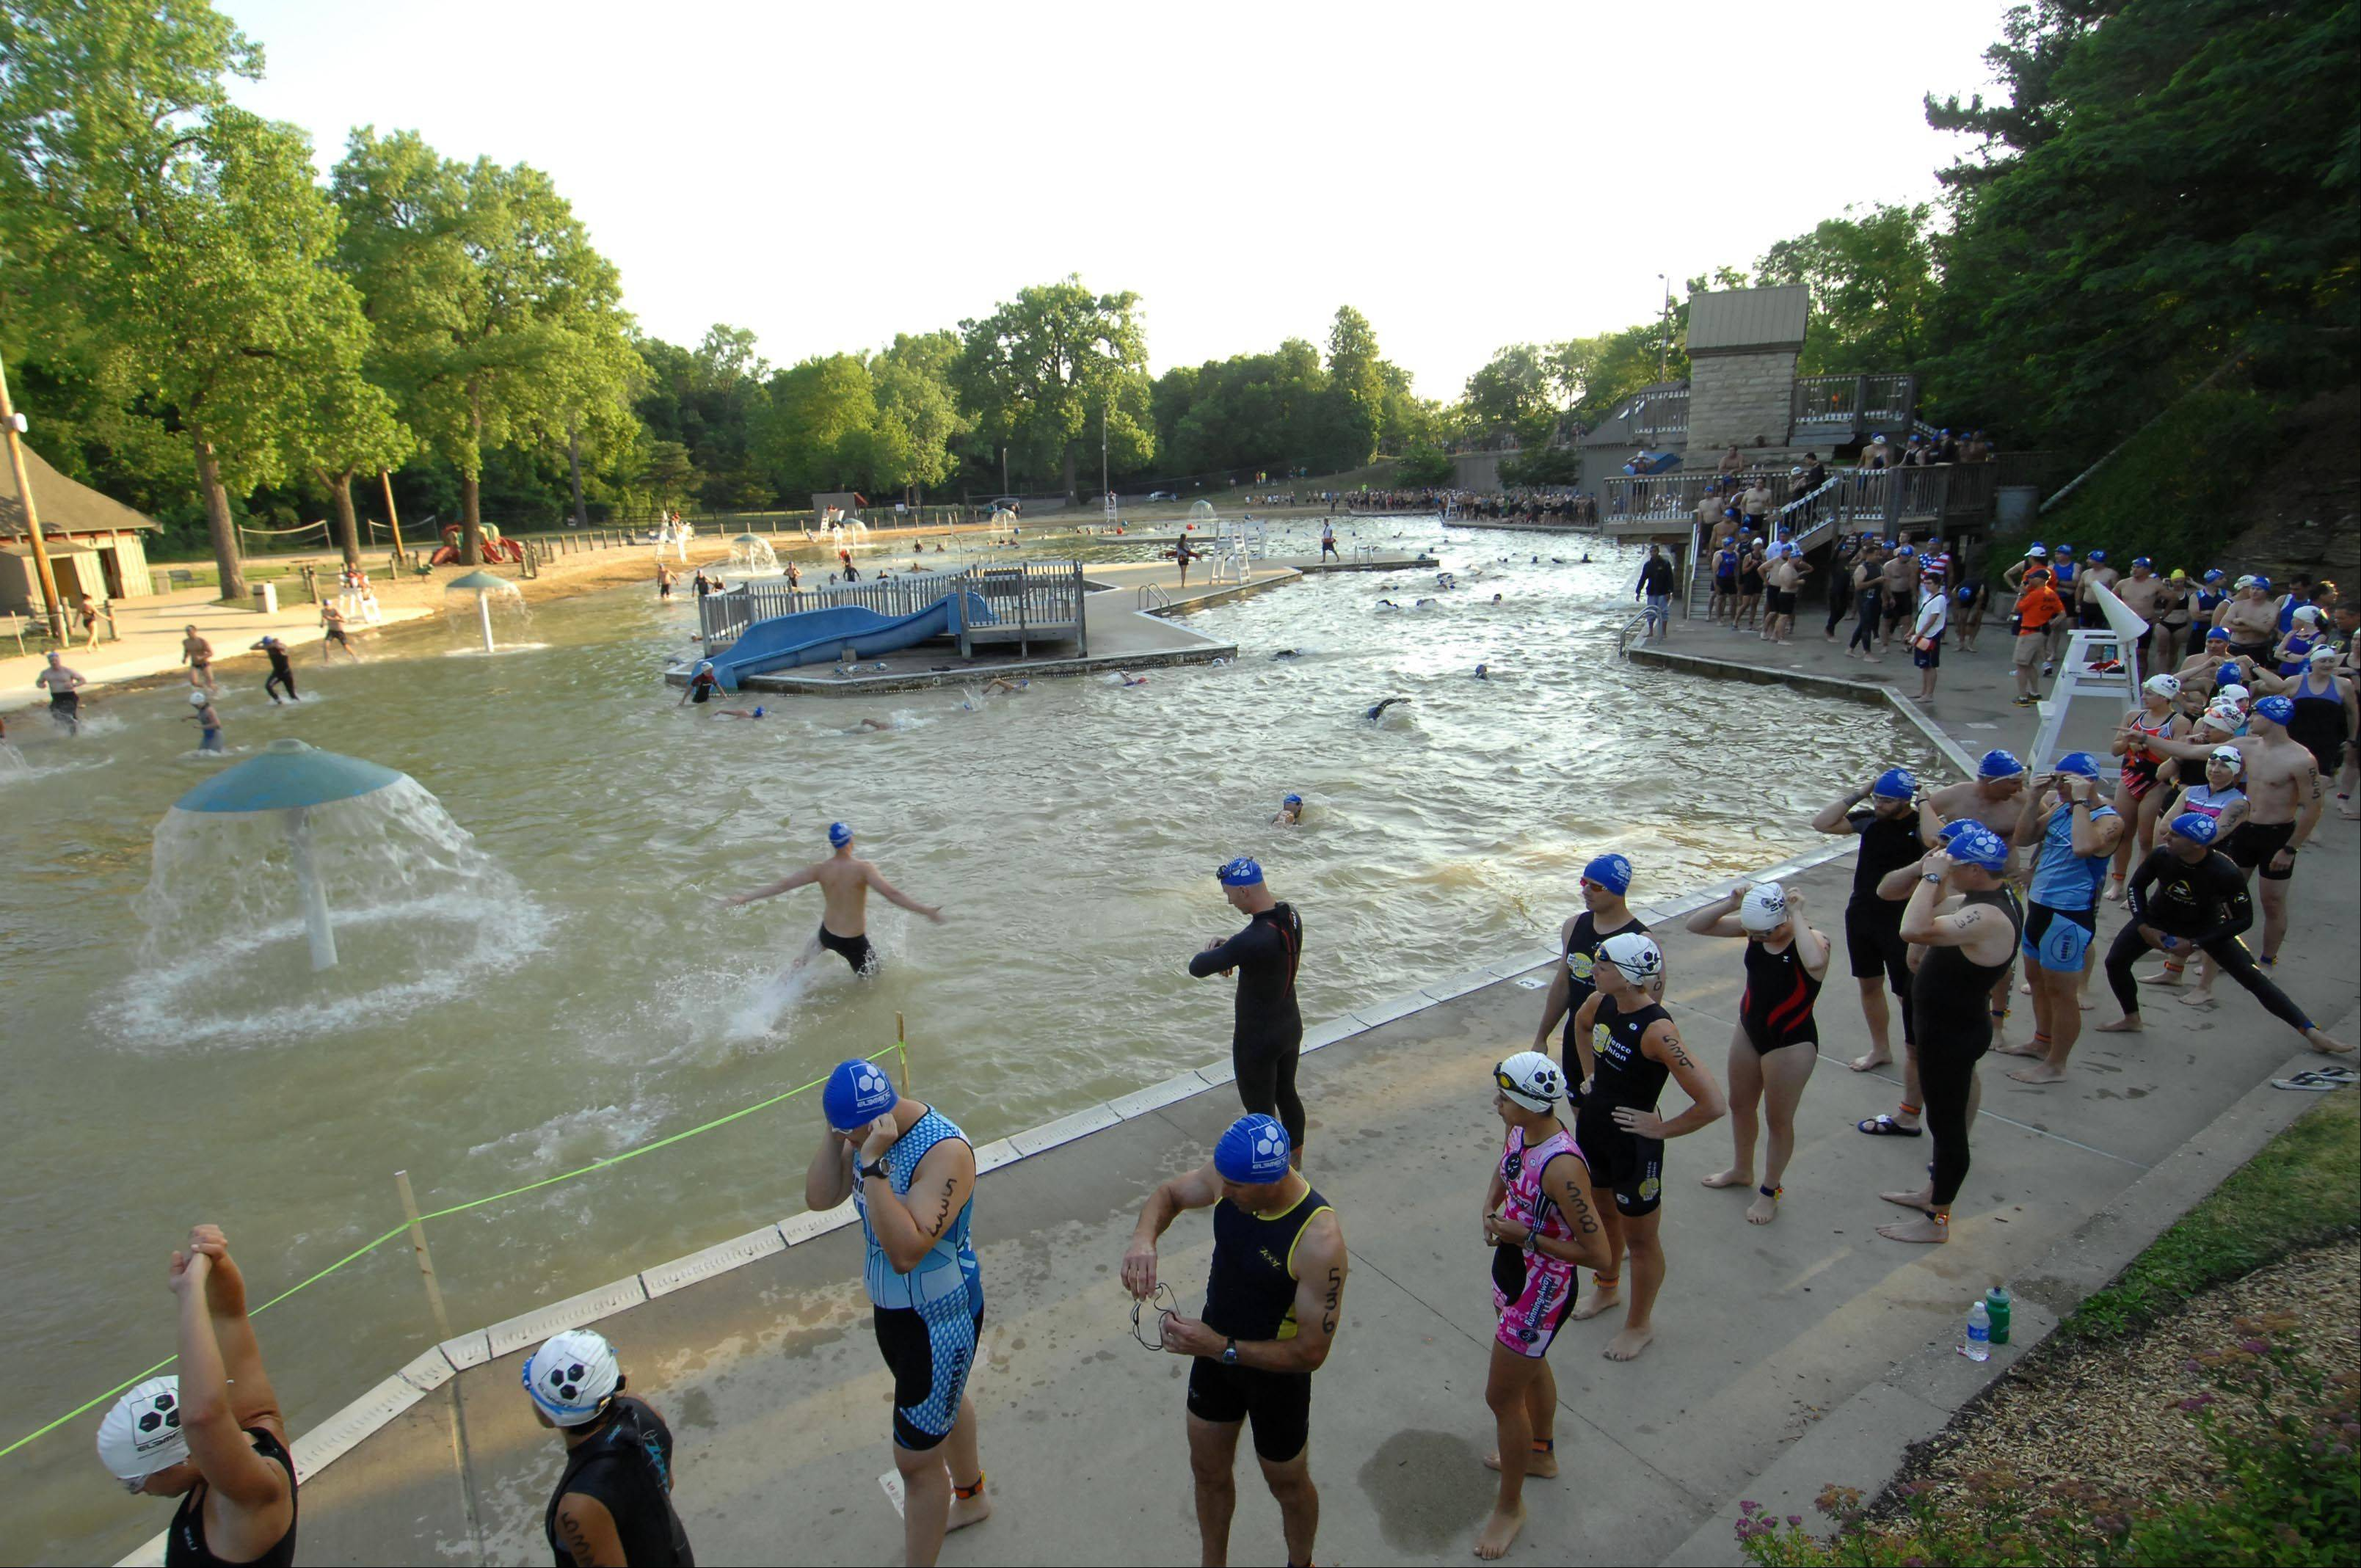 The line of competitors advances to the starting line as racers enter the water one by one at Quarry Beach at last year�s Batavia Triathlon and Duathlon.